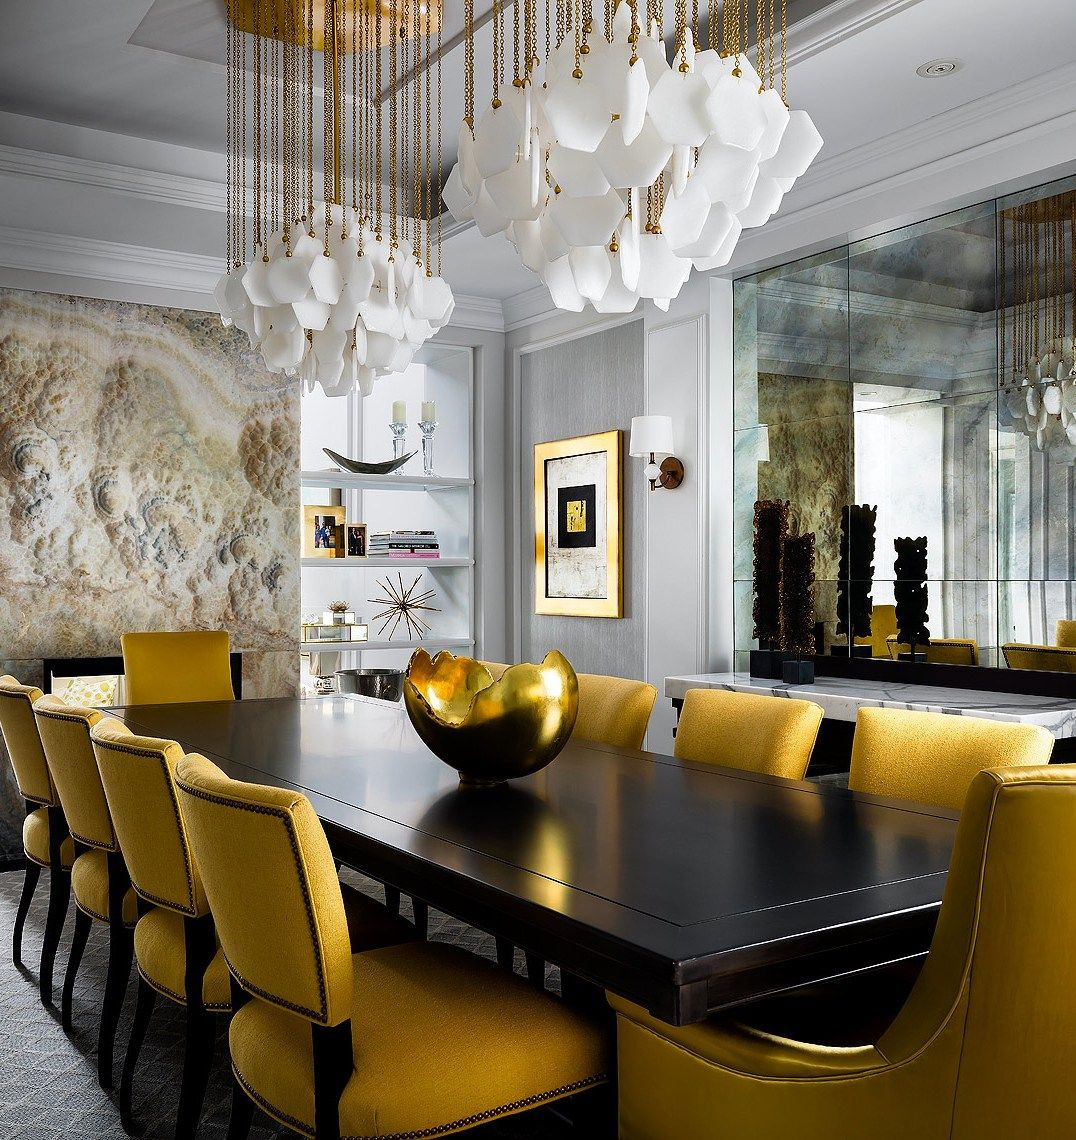 Glamorous Gold Dining Room Photographed By Brandon Barre Elegant Dining Room Luxury Dining Dining Room Design